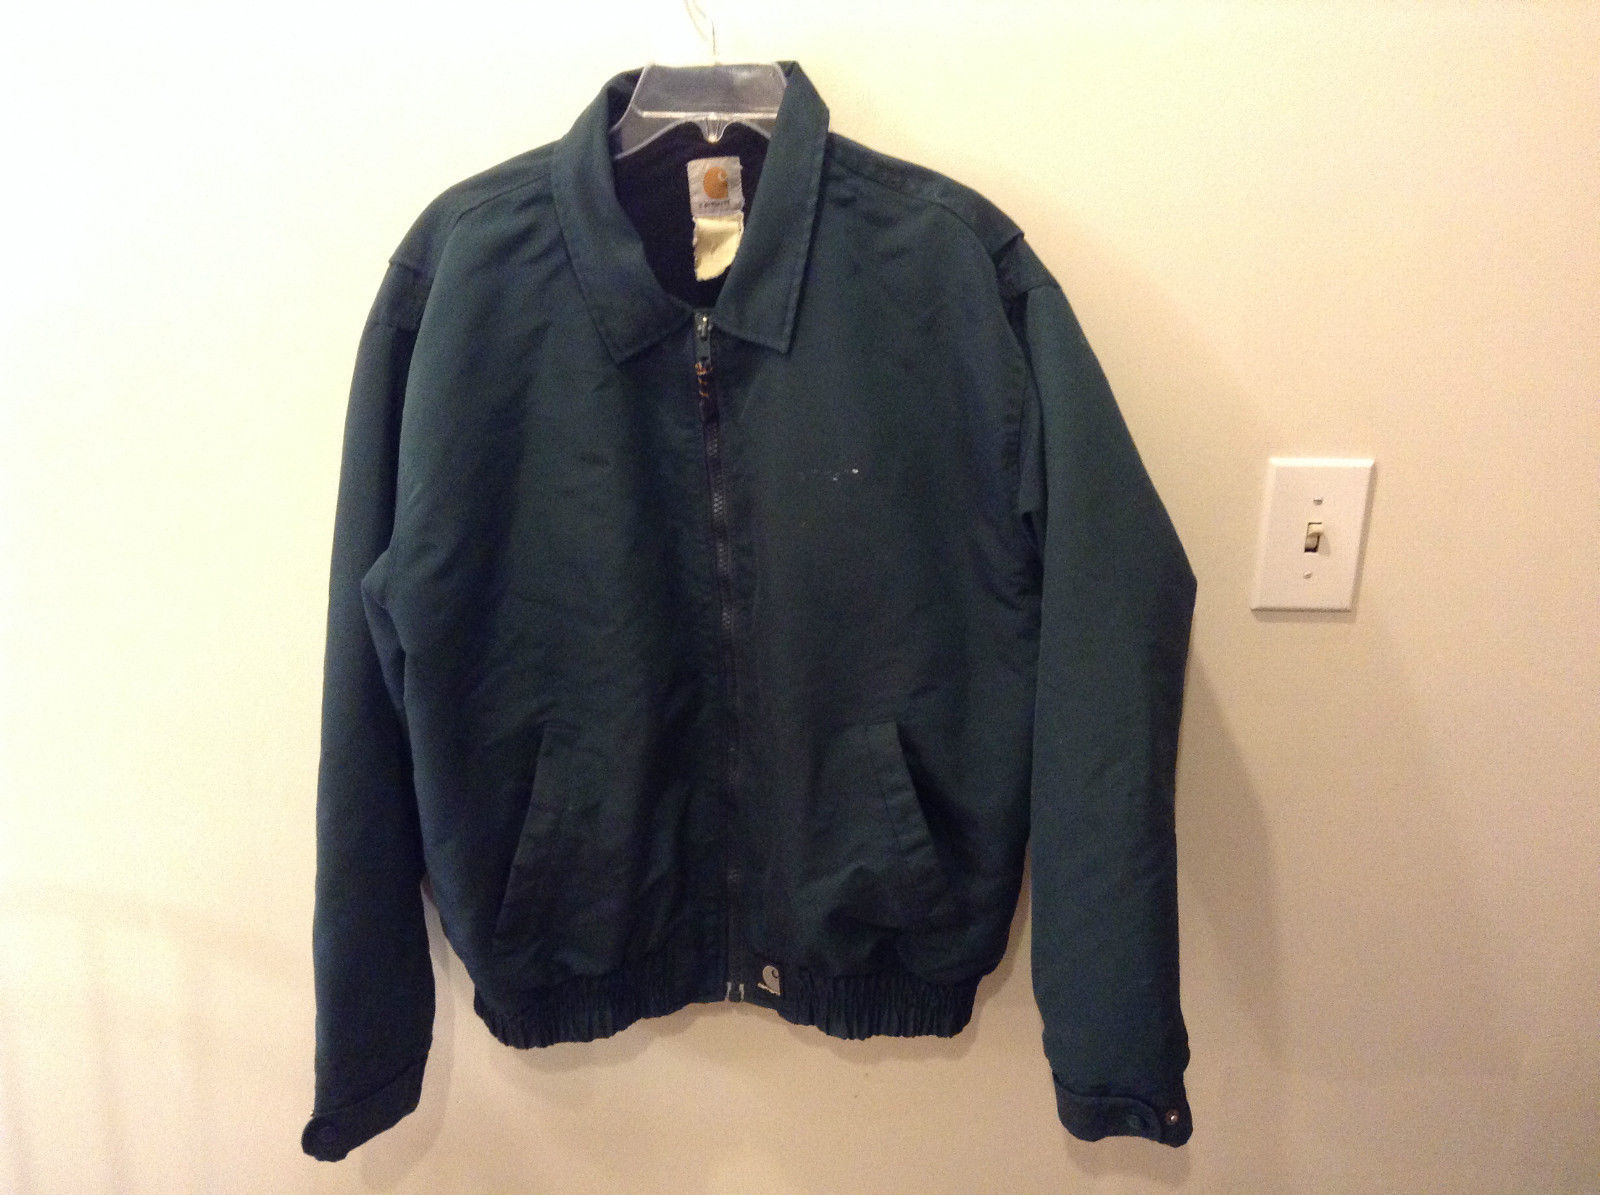 Green Carhartt Winter Coat Jacket Zipper Front No Size Tag Measurements Below